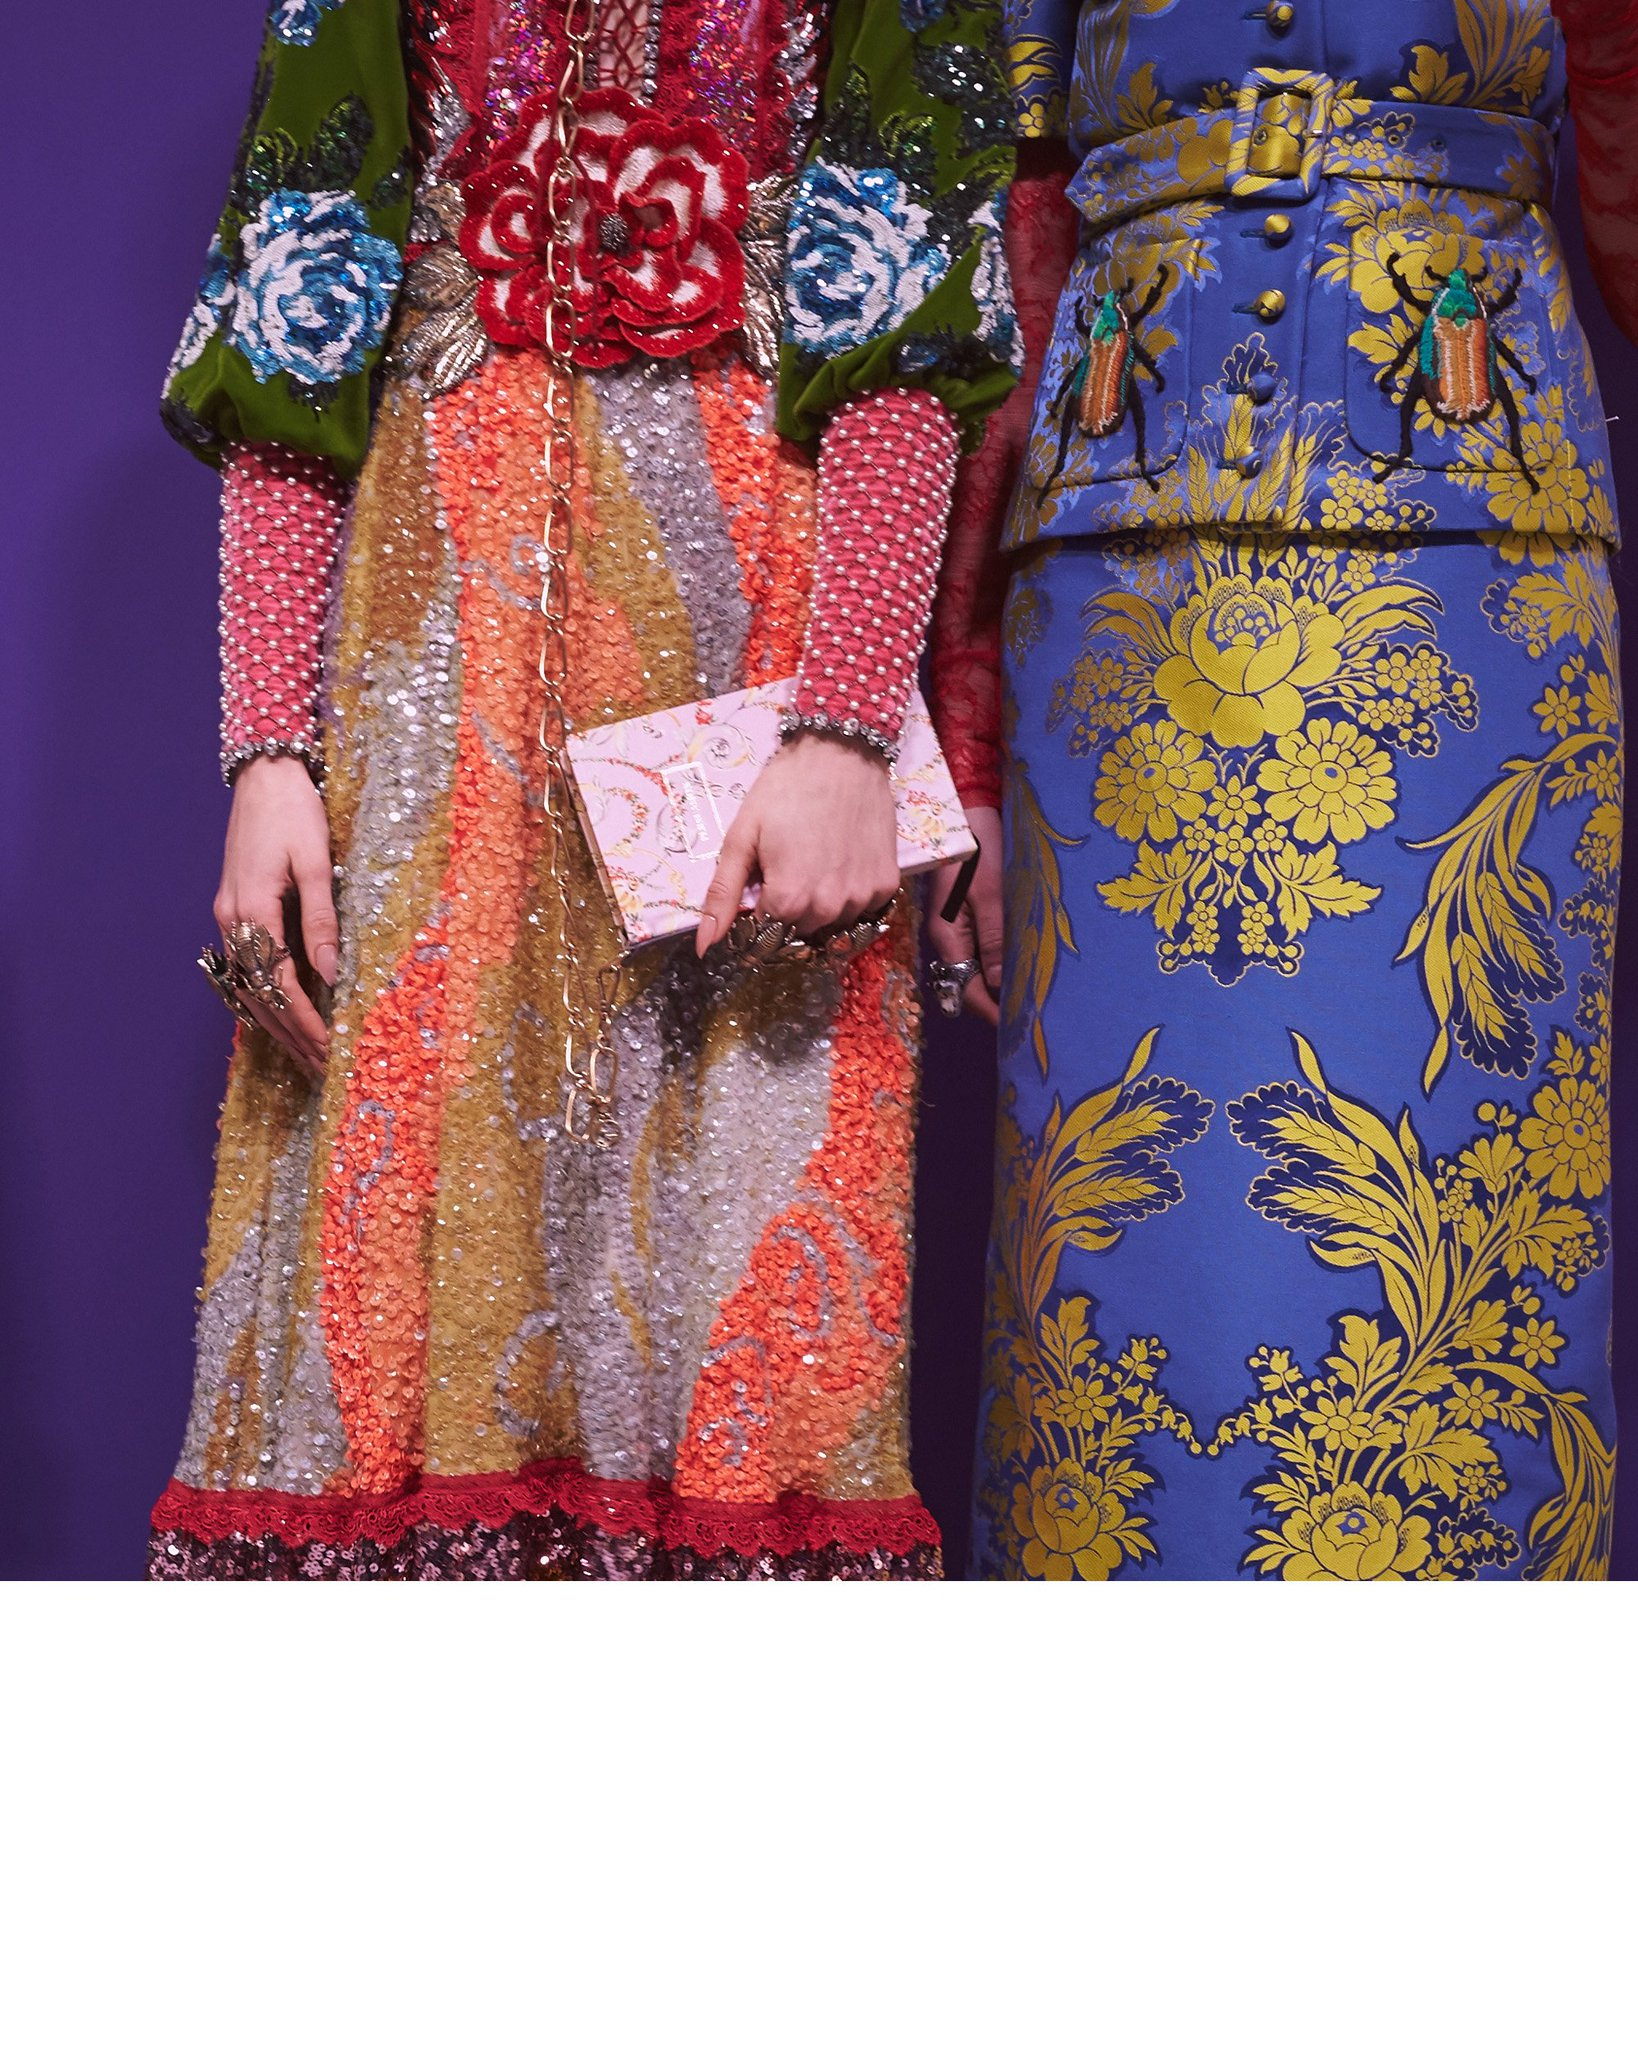 Embellished gowns and jacquard skirts at the #GucciFW17 show. https://t.co/2x040b1BCw